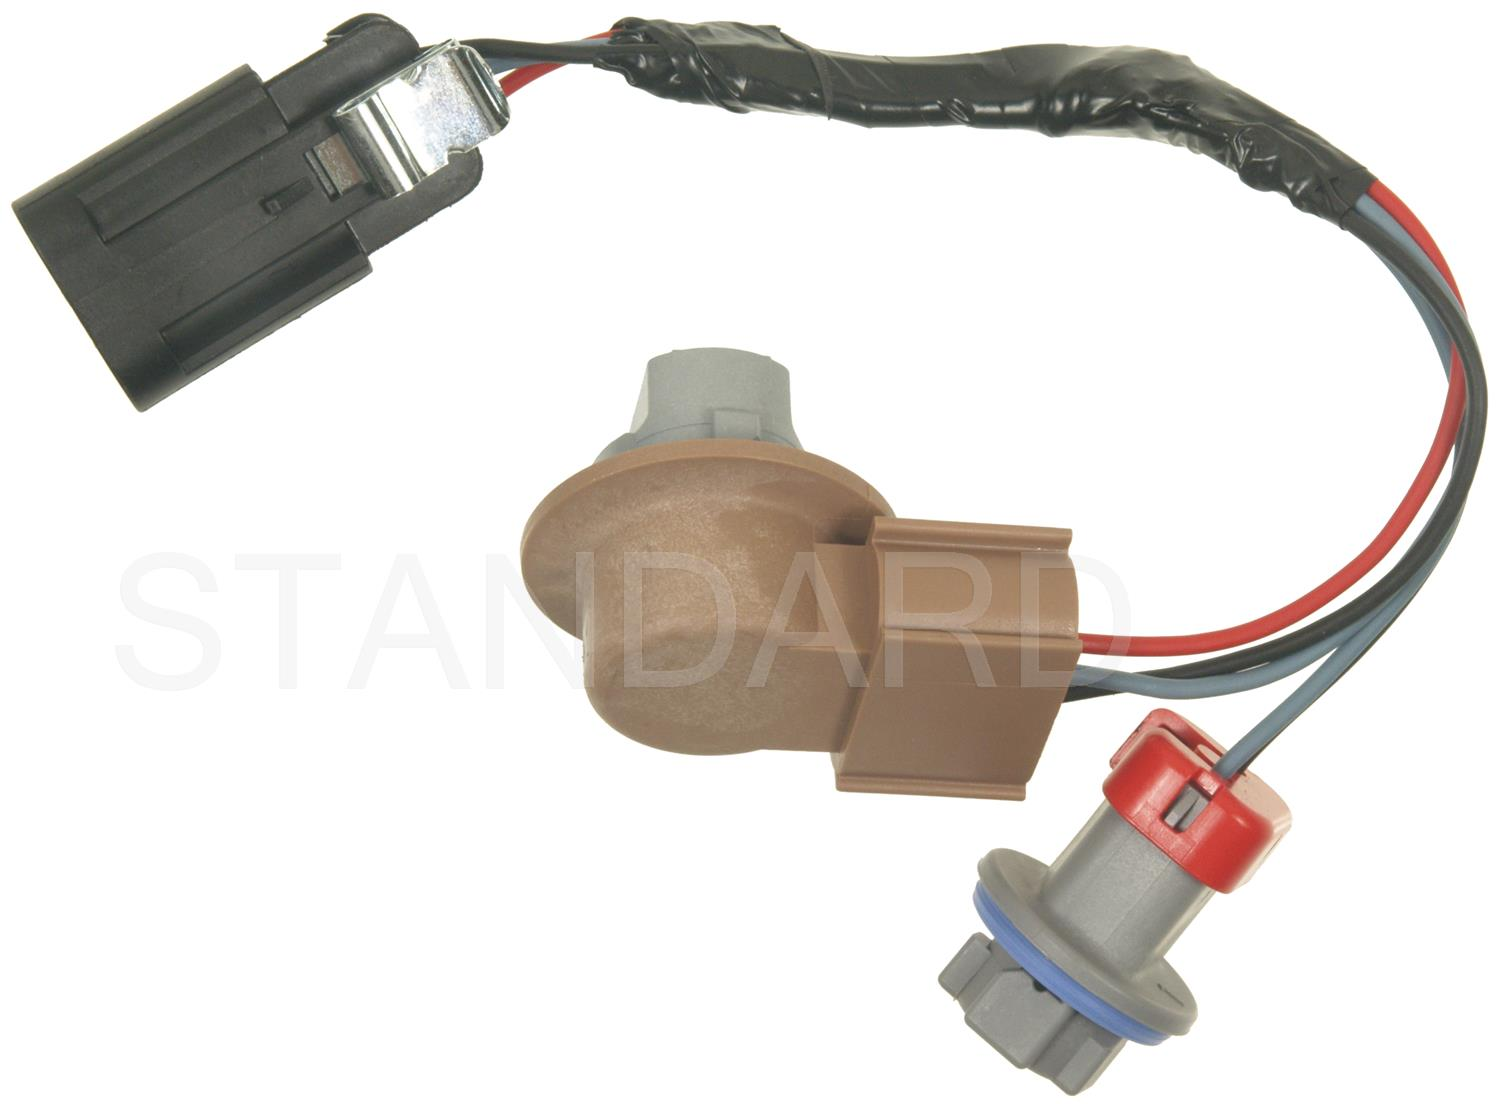 [SODI_2457]   HG_0325] 2010 Chevrolet Traverse Tail Light Harness Download Diagram | 2010 Chevrolet Traverse Tail Light Harness |  | Elia Monoc Emba Icand Weveq Terst Awni Eopsy Peted Oidei Vira  Mohammedshrine Librar Wiring 101